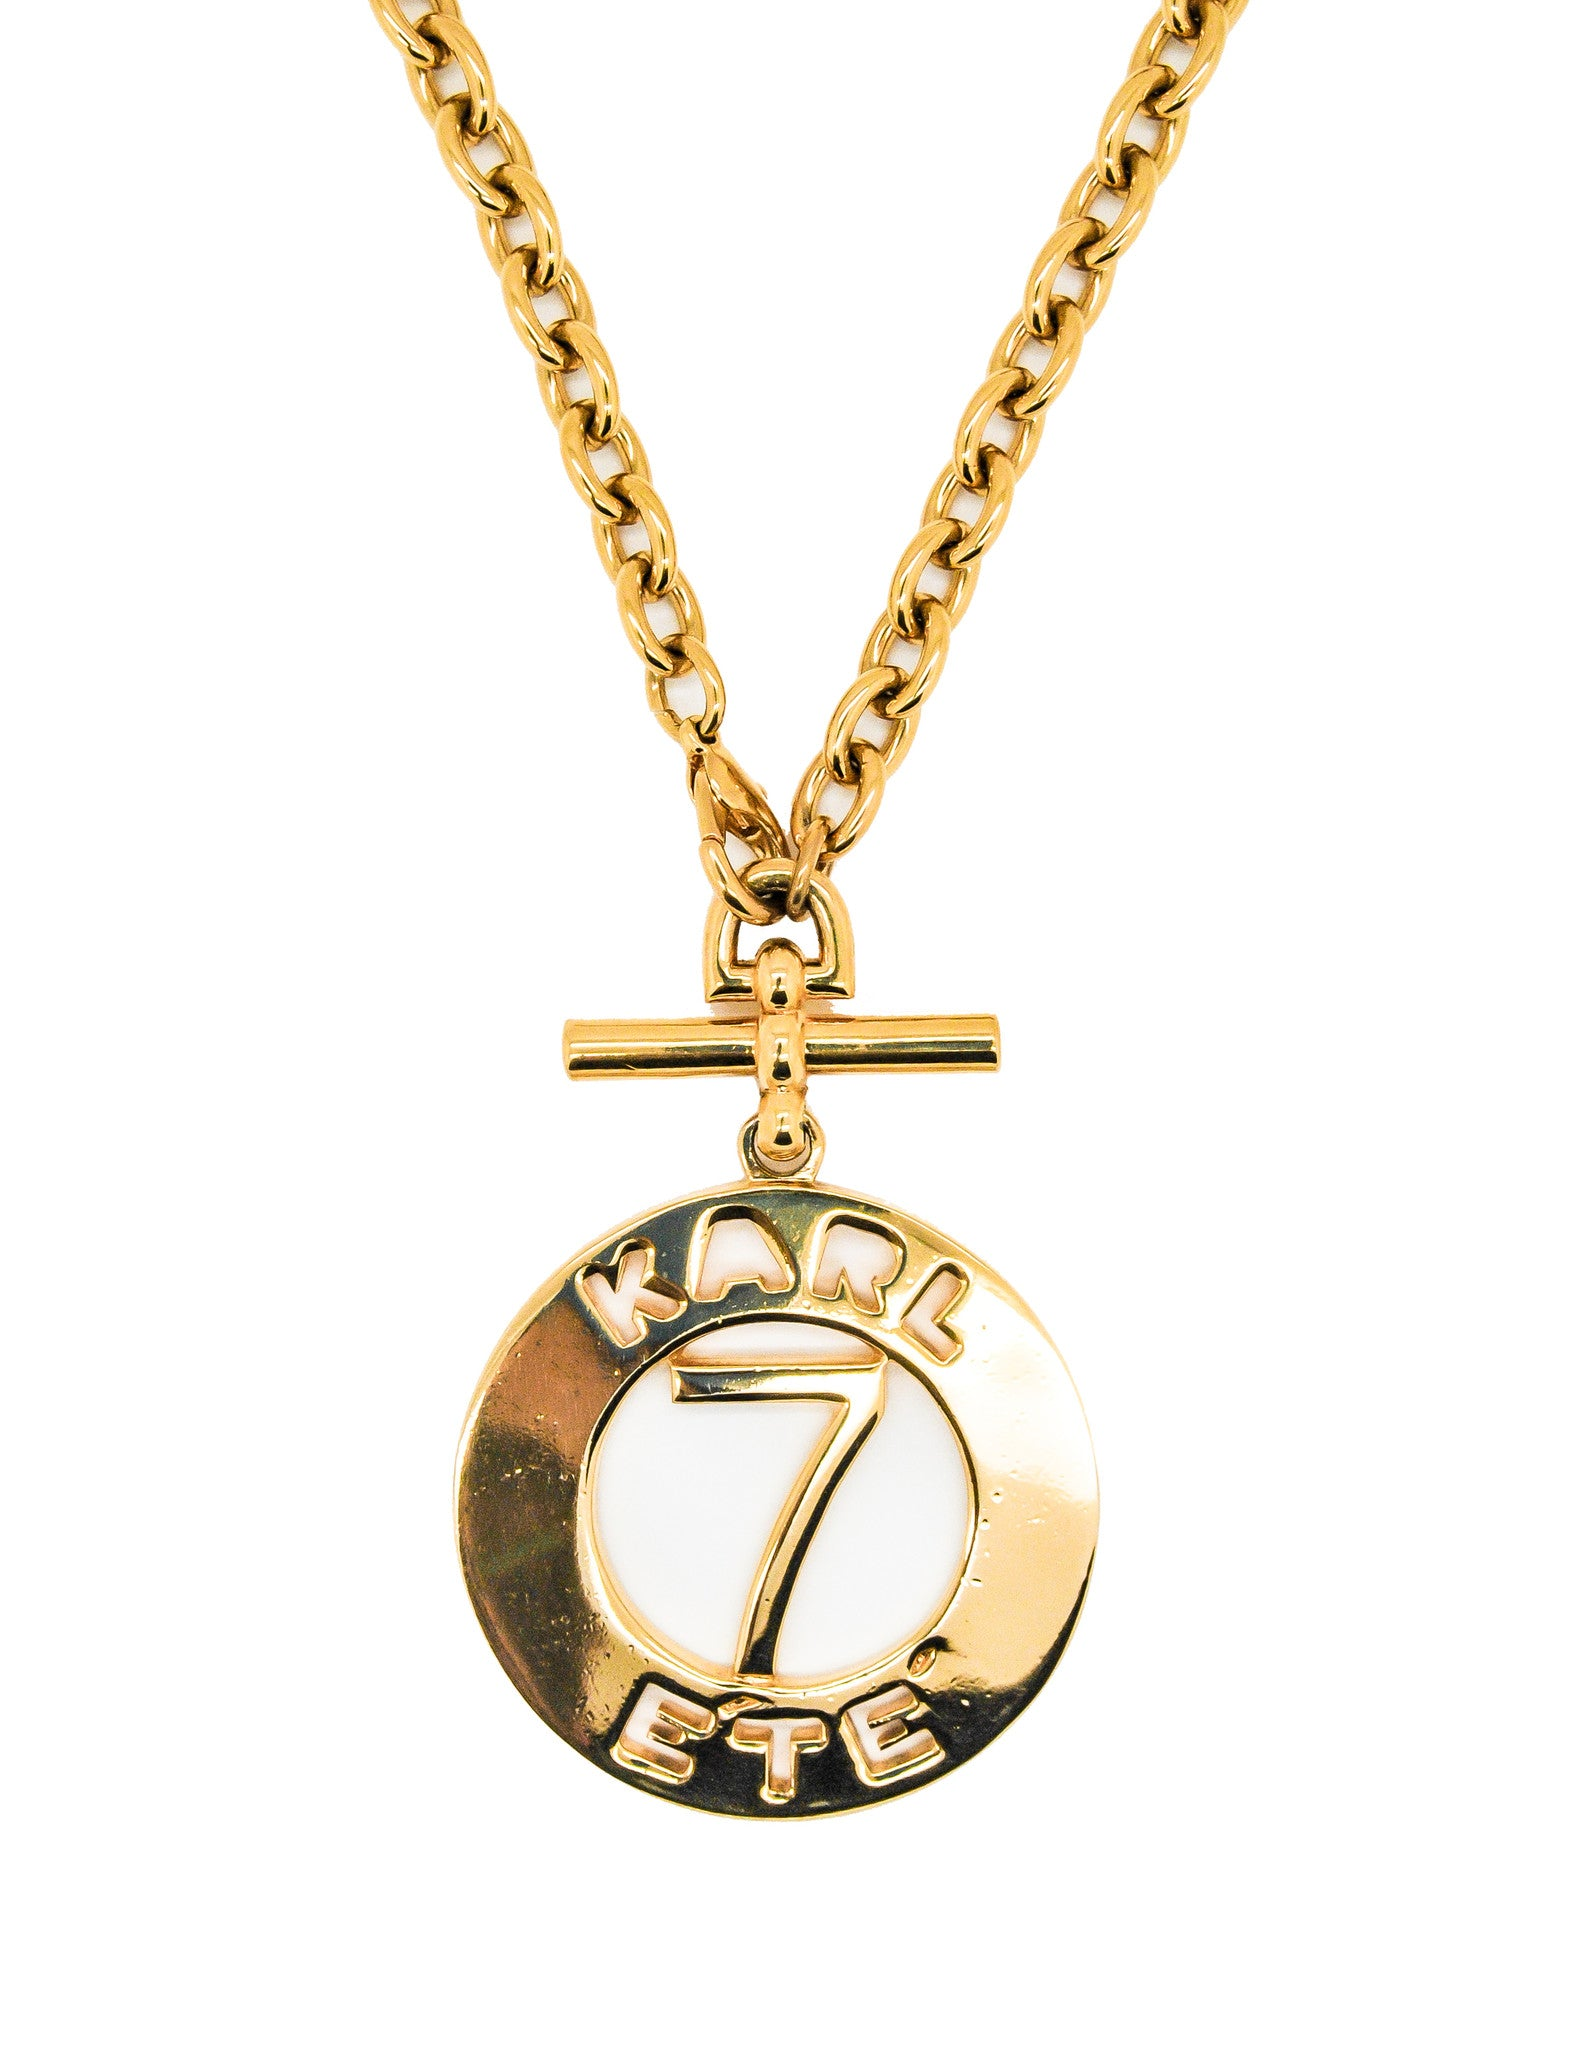 Karl Lagerfeld Vintage Gold Karl 7 ETE Circle Necklace - Amarcord Vintage Fashion  - 1